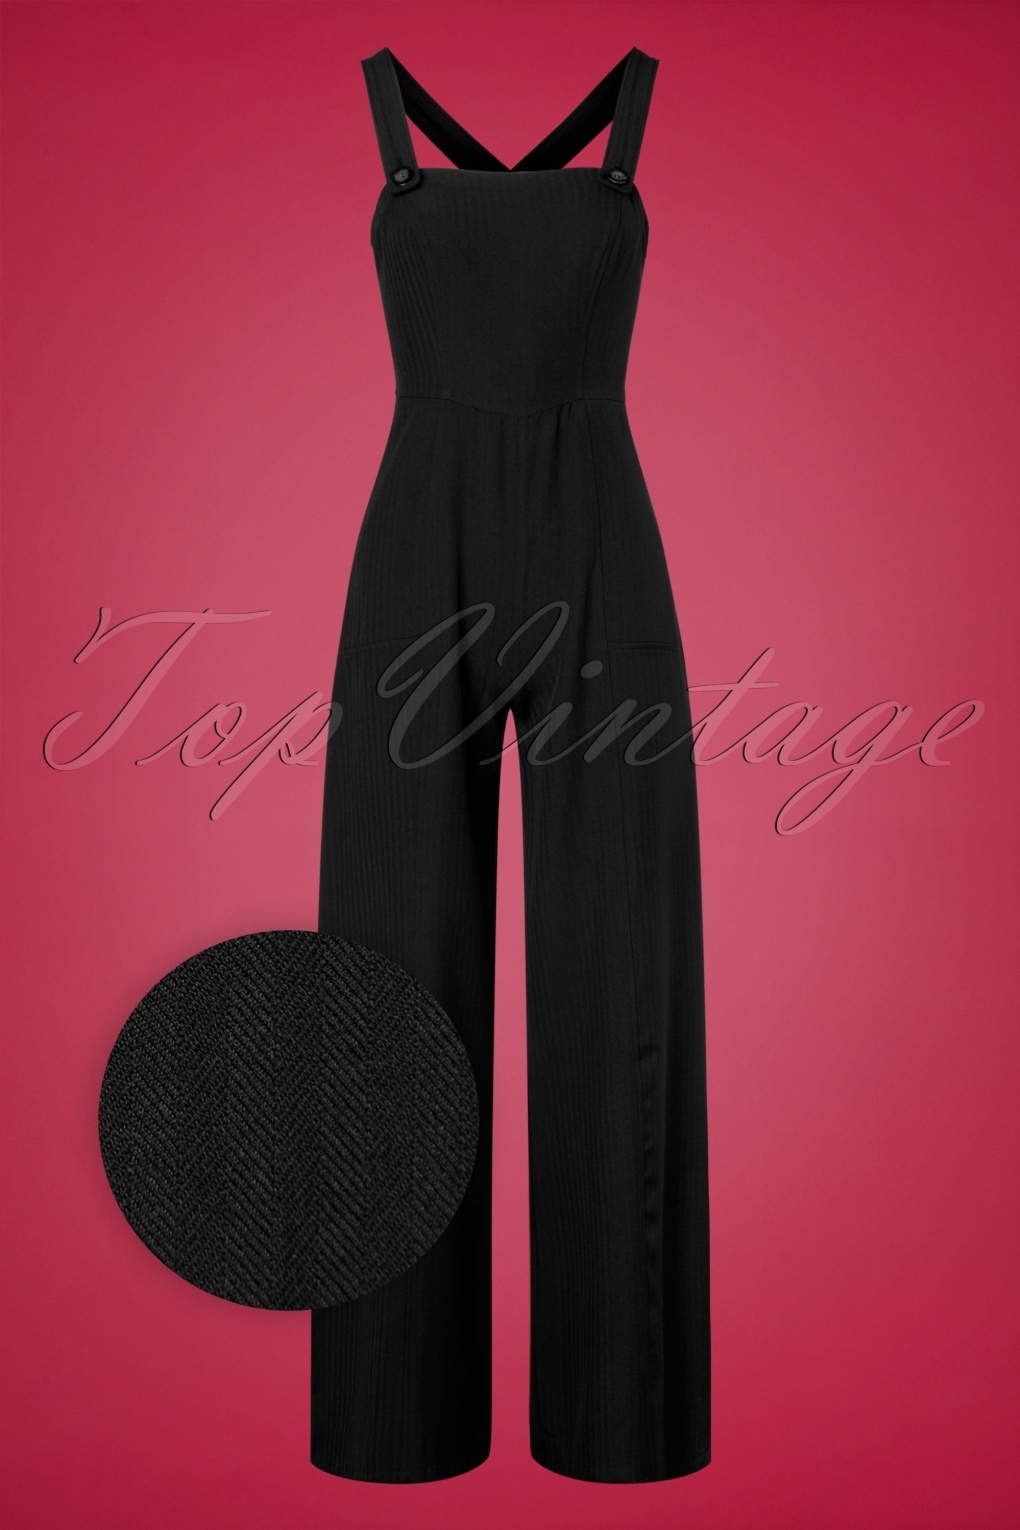 Vintage Overalls 1910s -1950s History & Shop Overalls 40s Mila Herringbone Jumpsuit in Black £75.51 AT vintagedancer.com